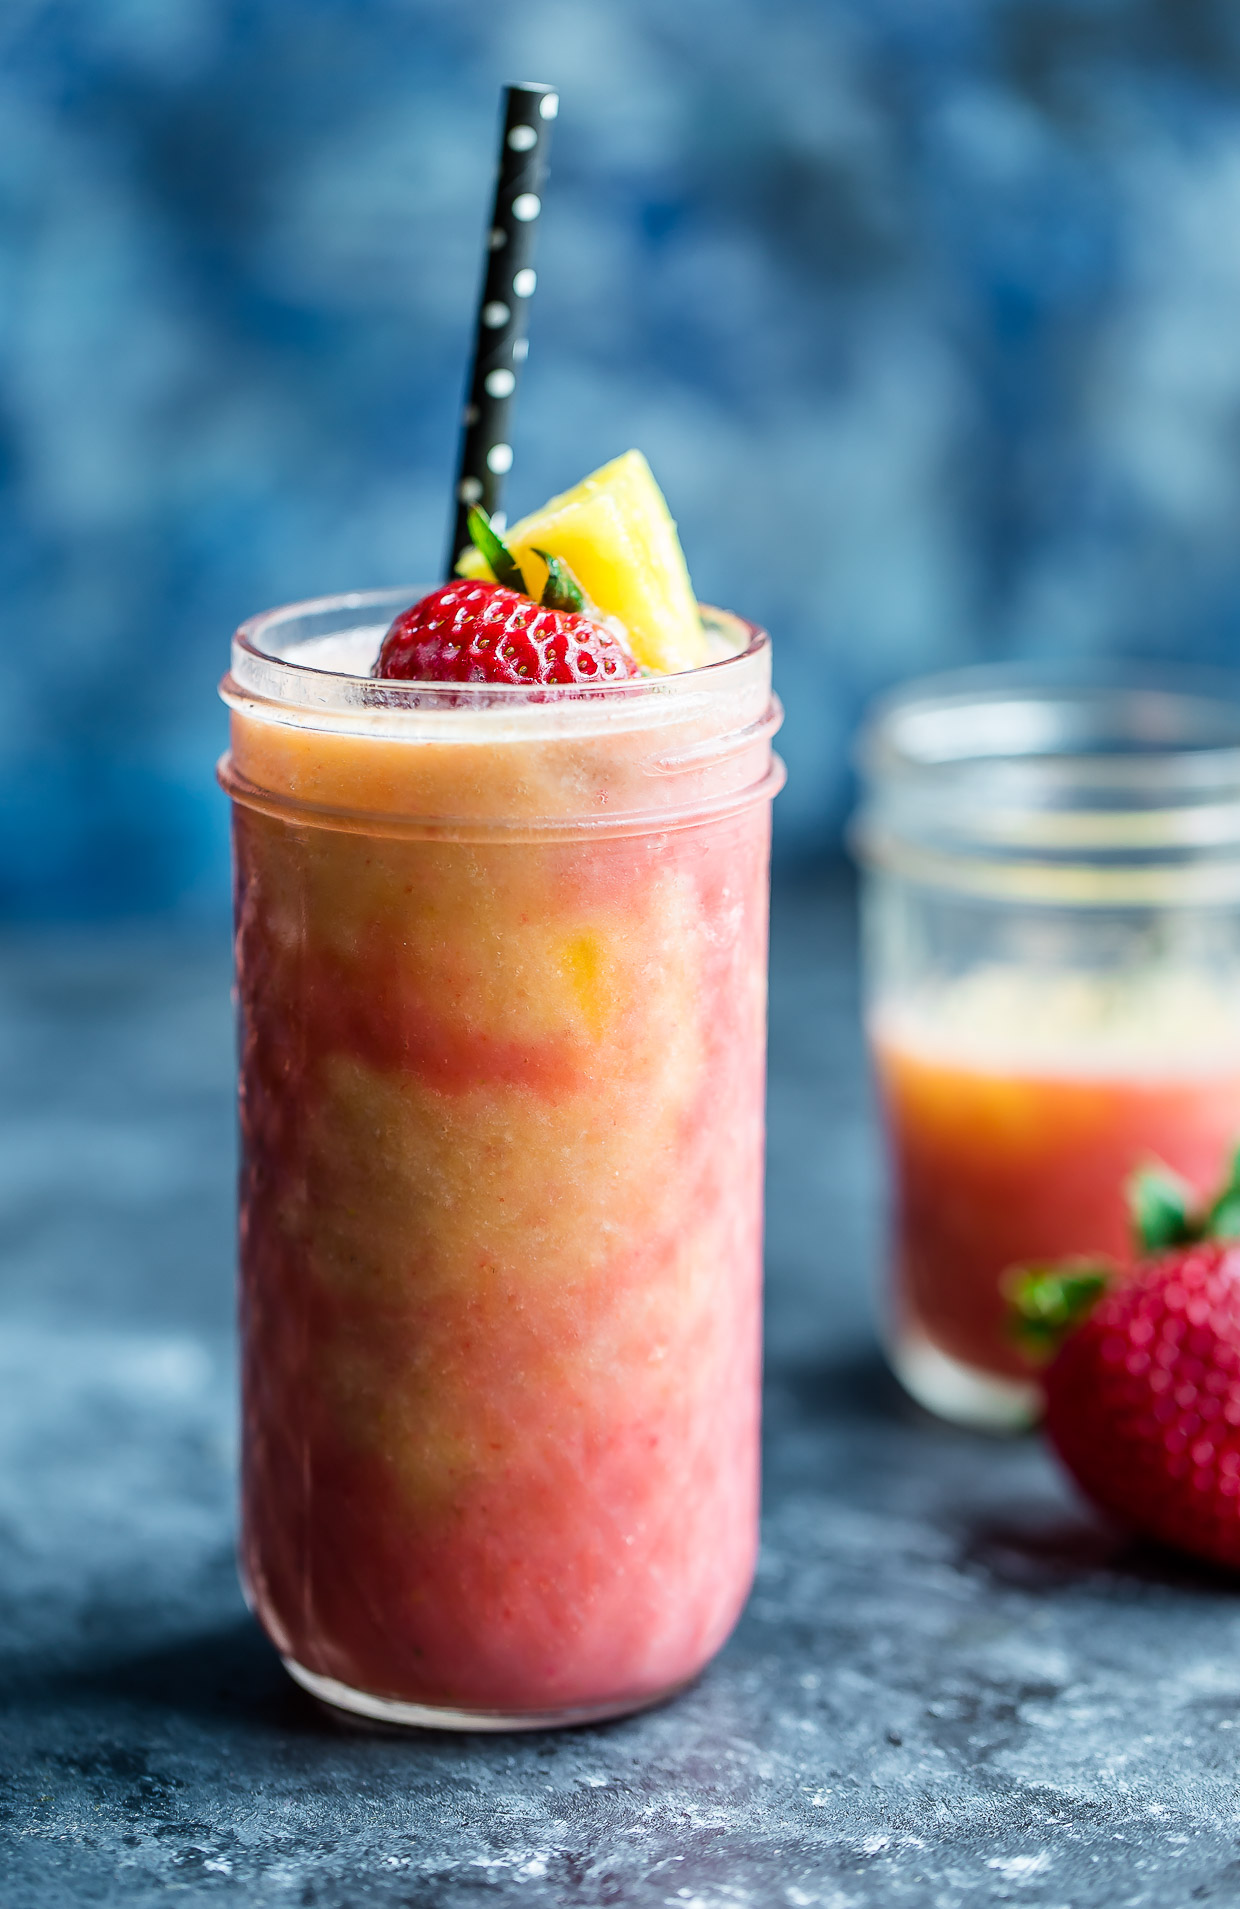 Tropical Pineapple Strawberry Swirl Smoothie with Yogurt and Honey